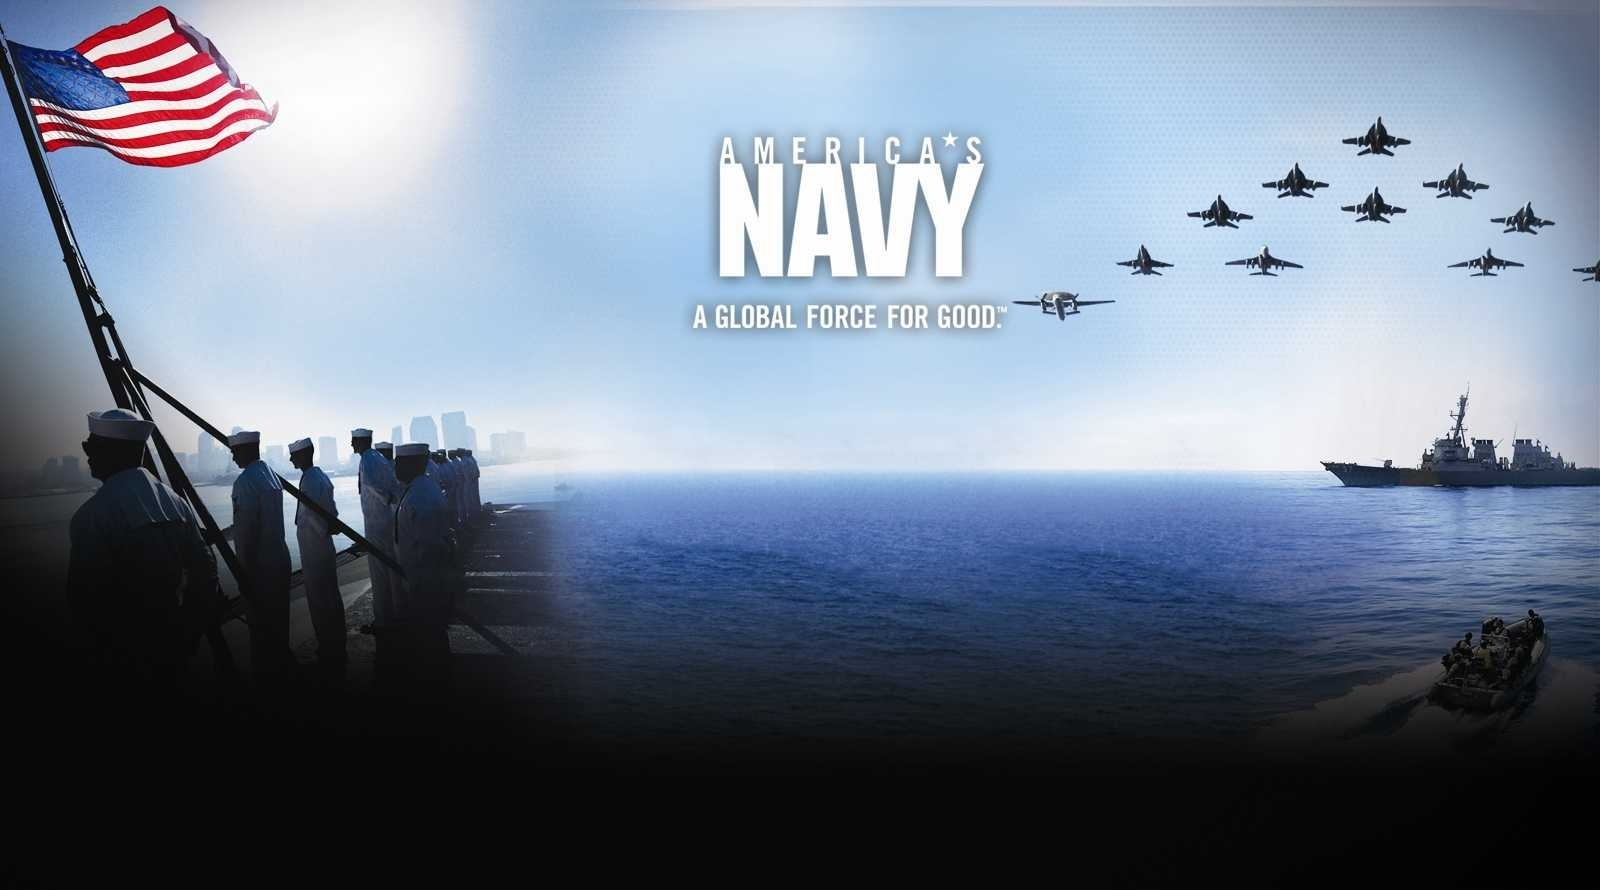 us navy wallpaper backgrounds high resolution for mobile phones